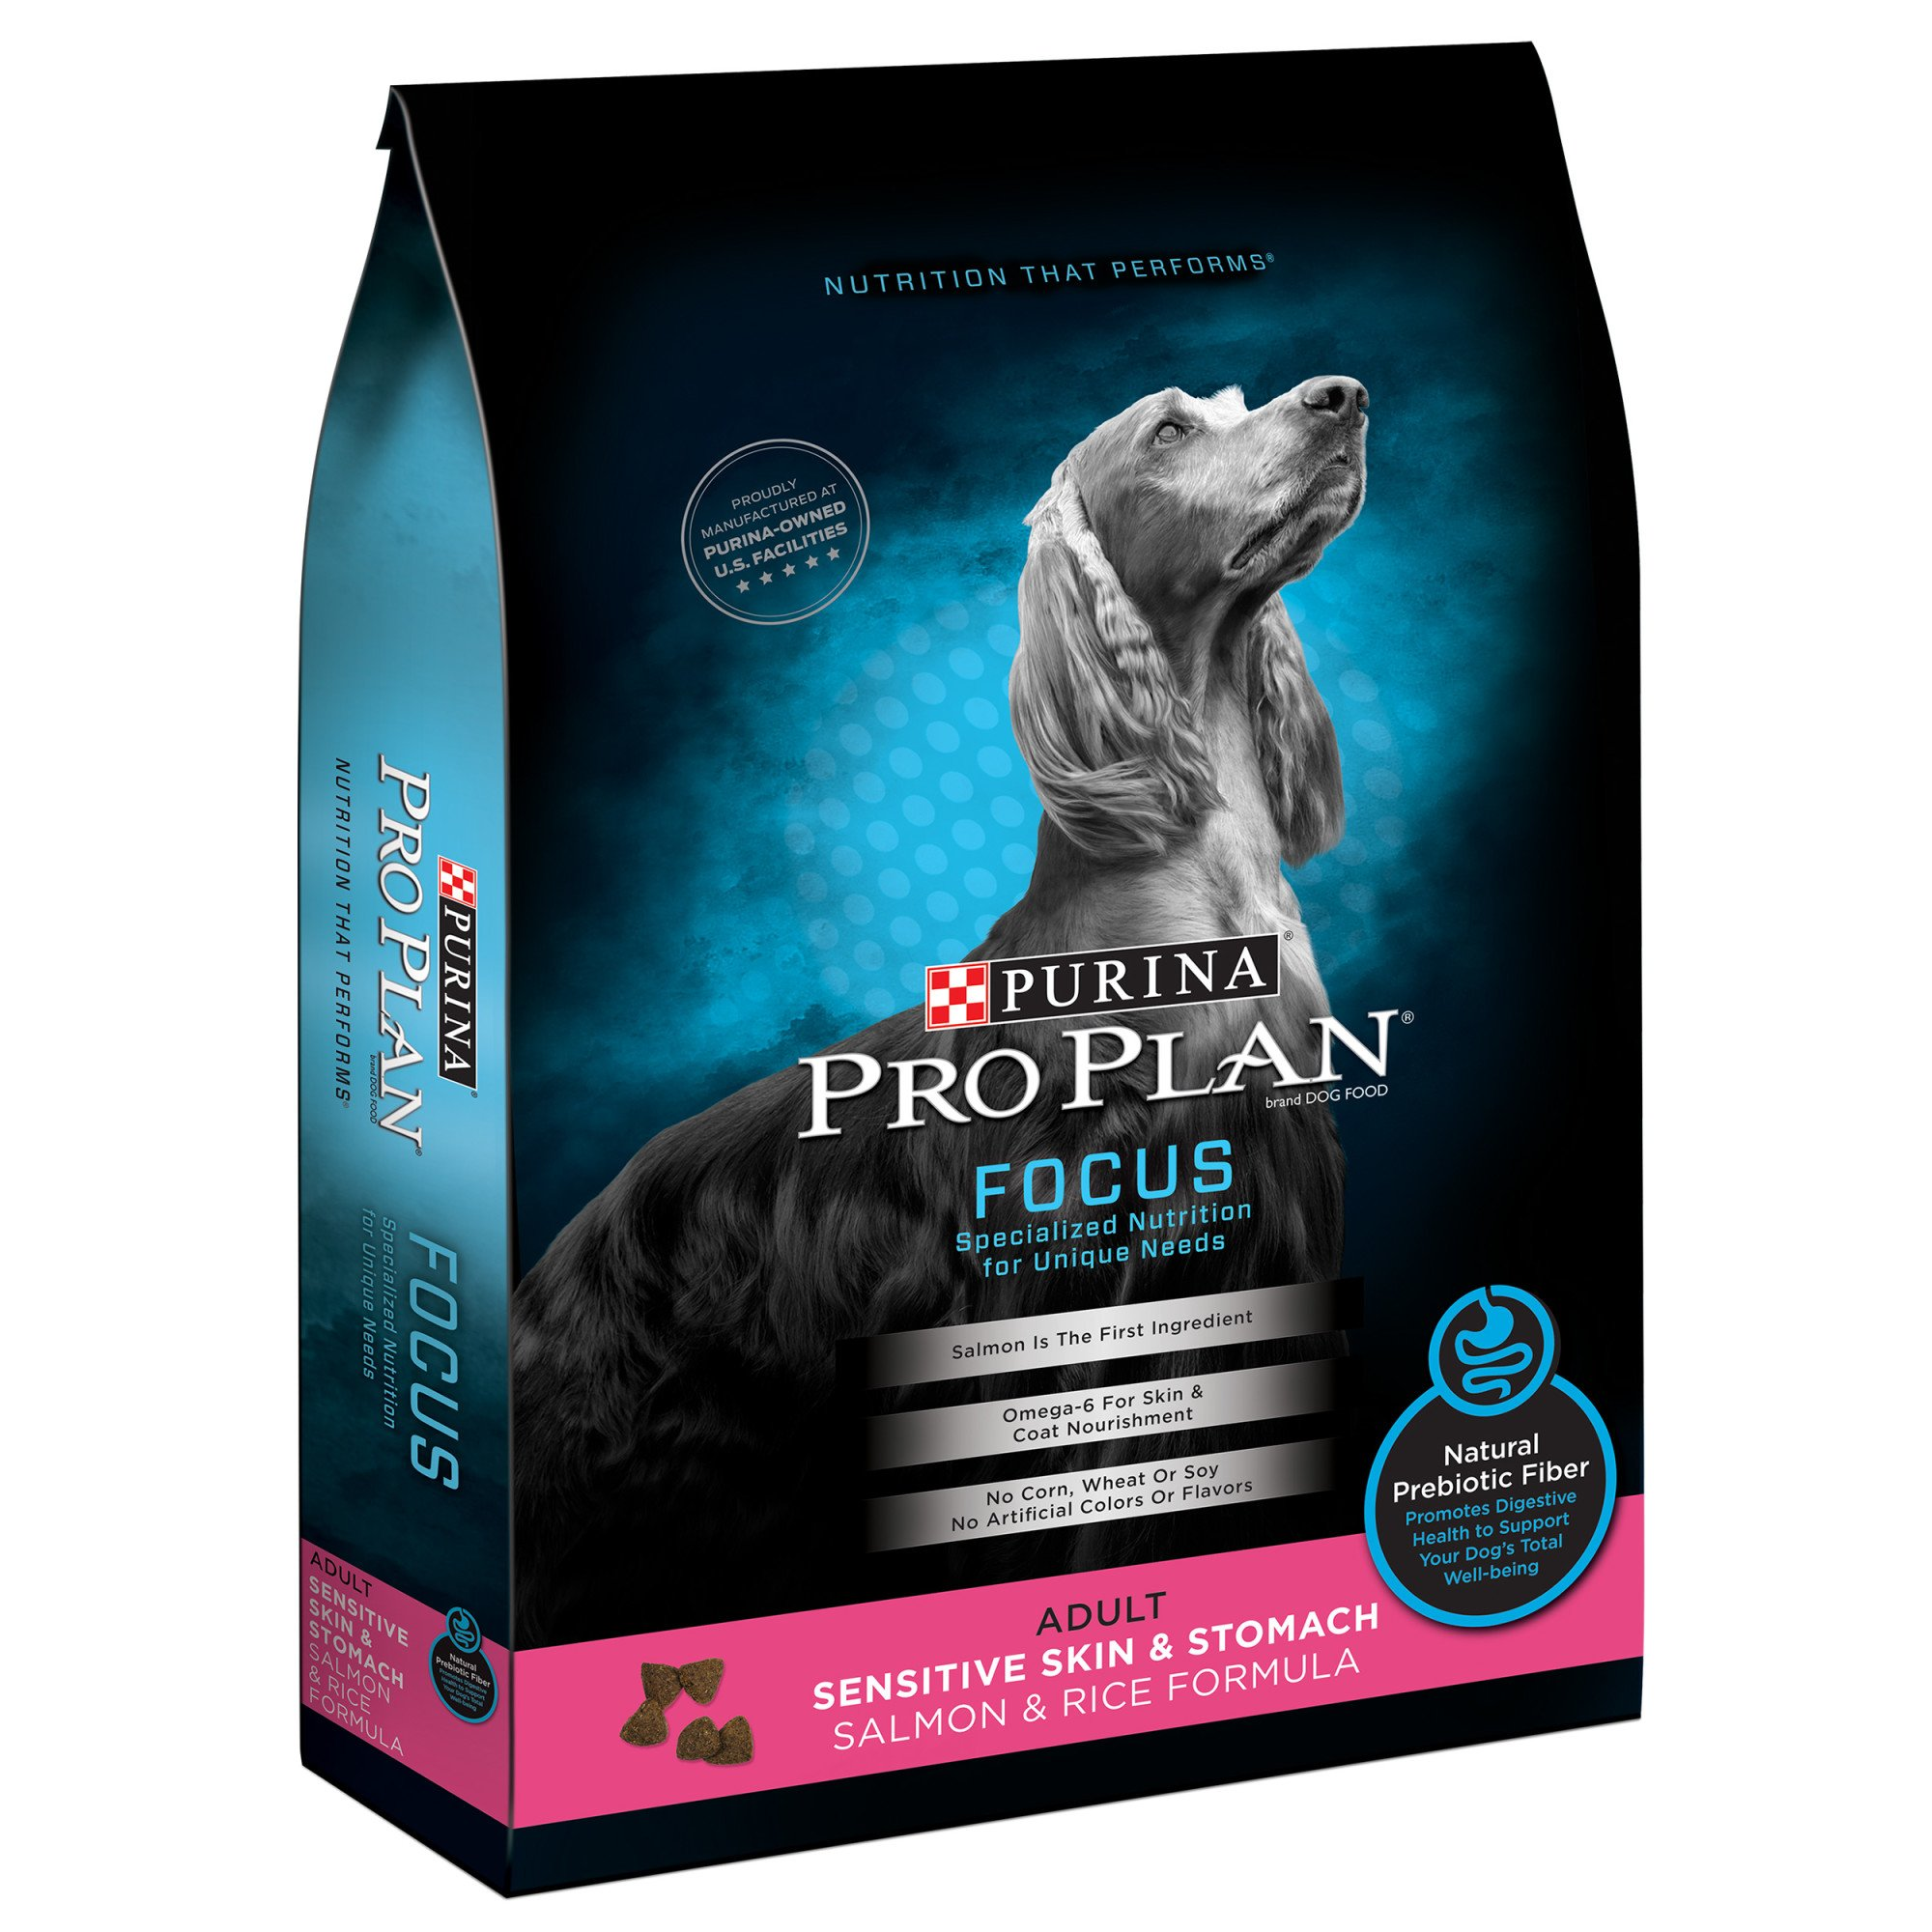 ++ Purina Pro Plan PetSmart & Petco Possibilities Instant Win & Sweepstakes Promotion